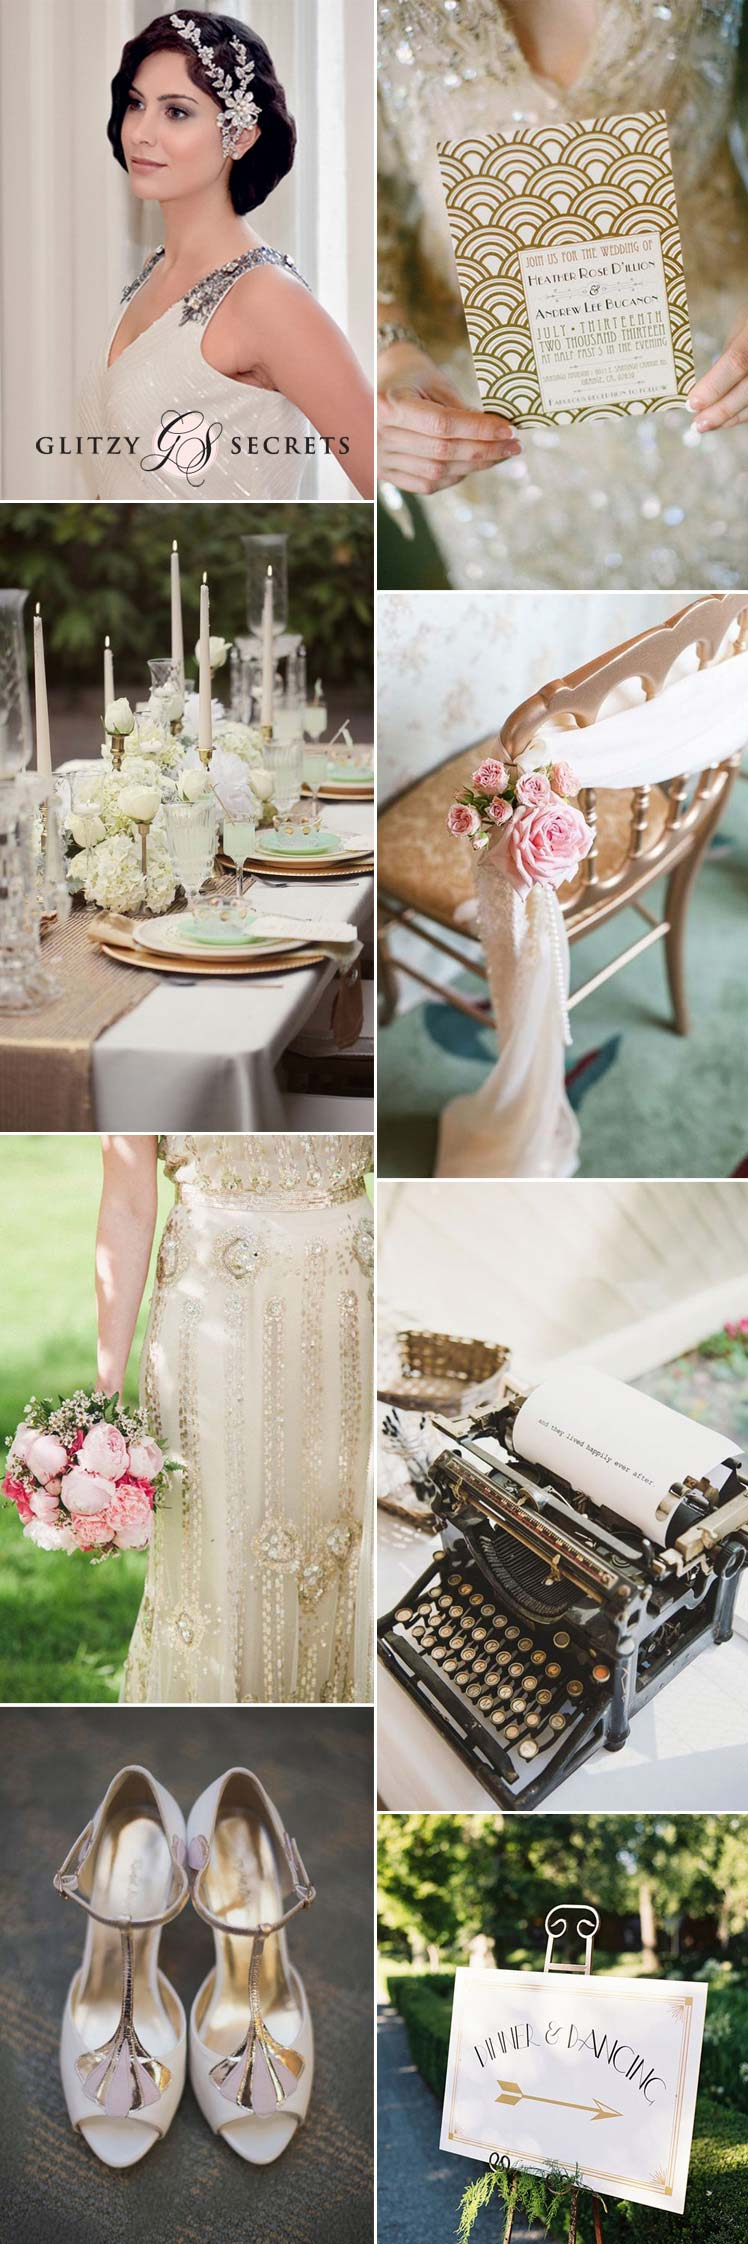 Modern Gatsby wedding inspiration and ideas